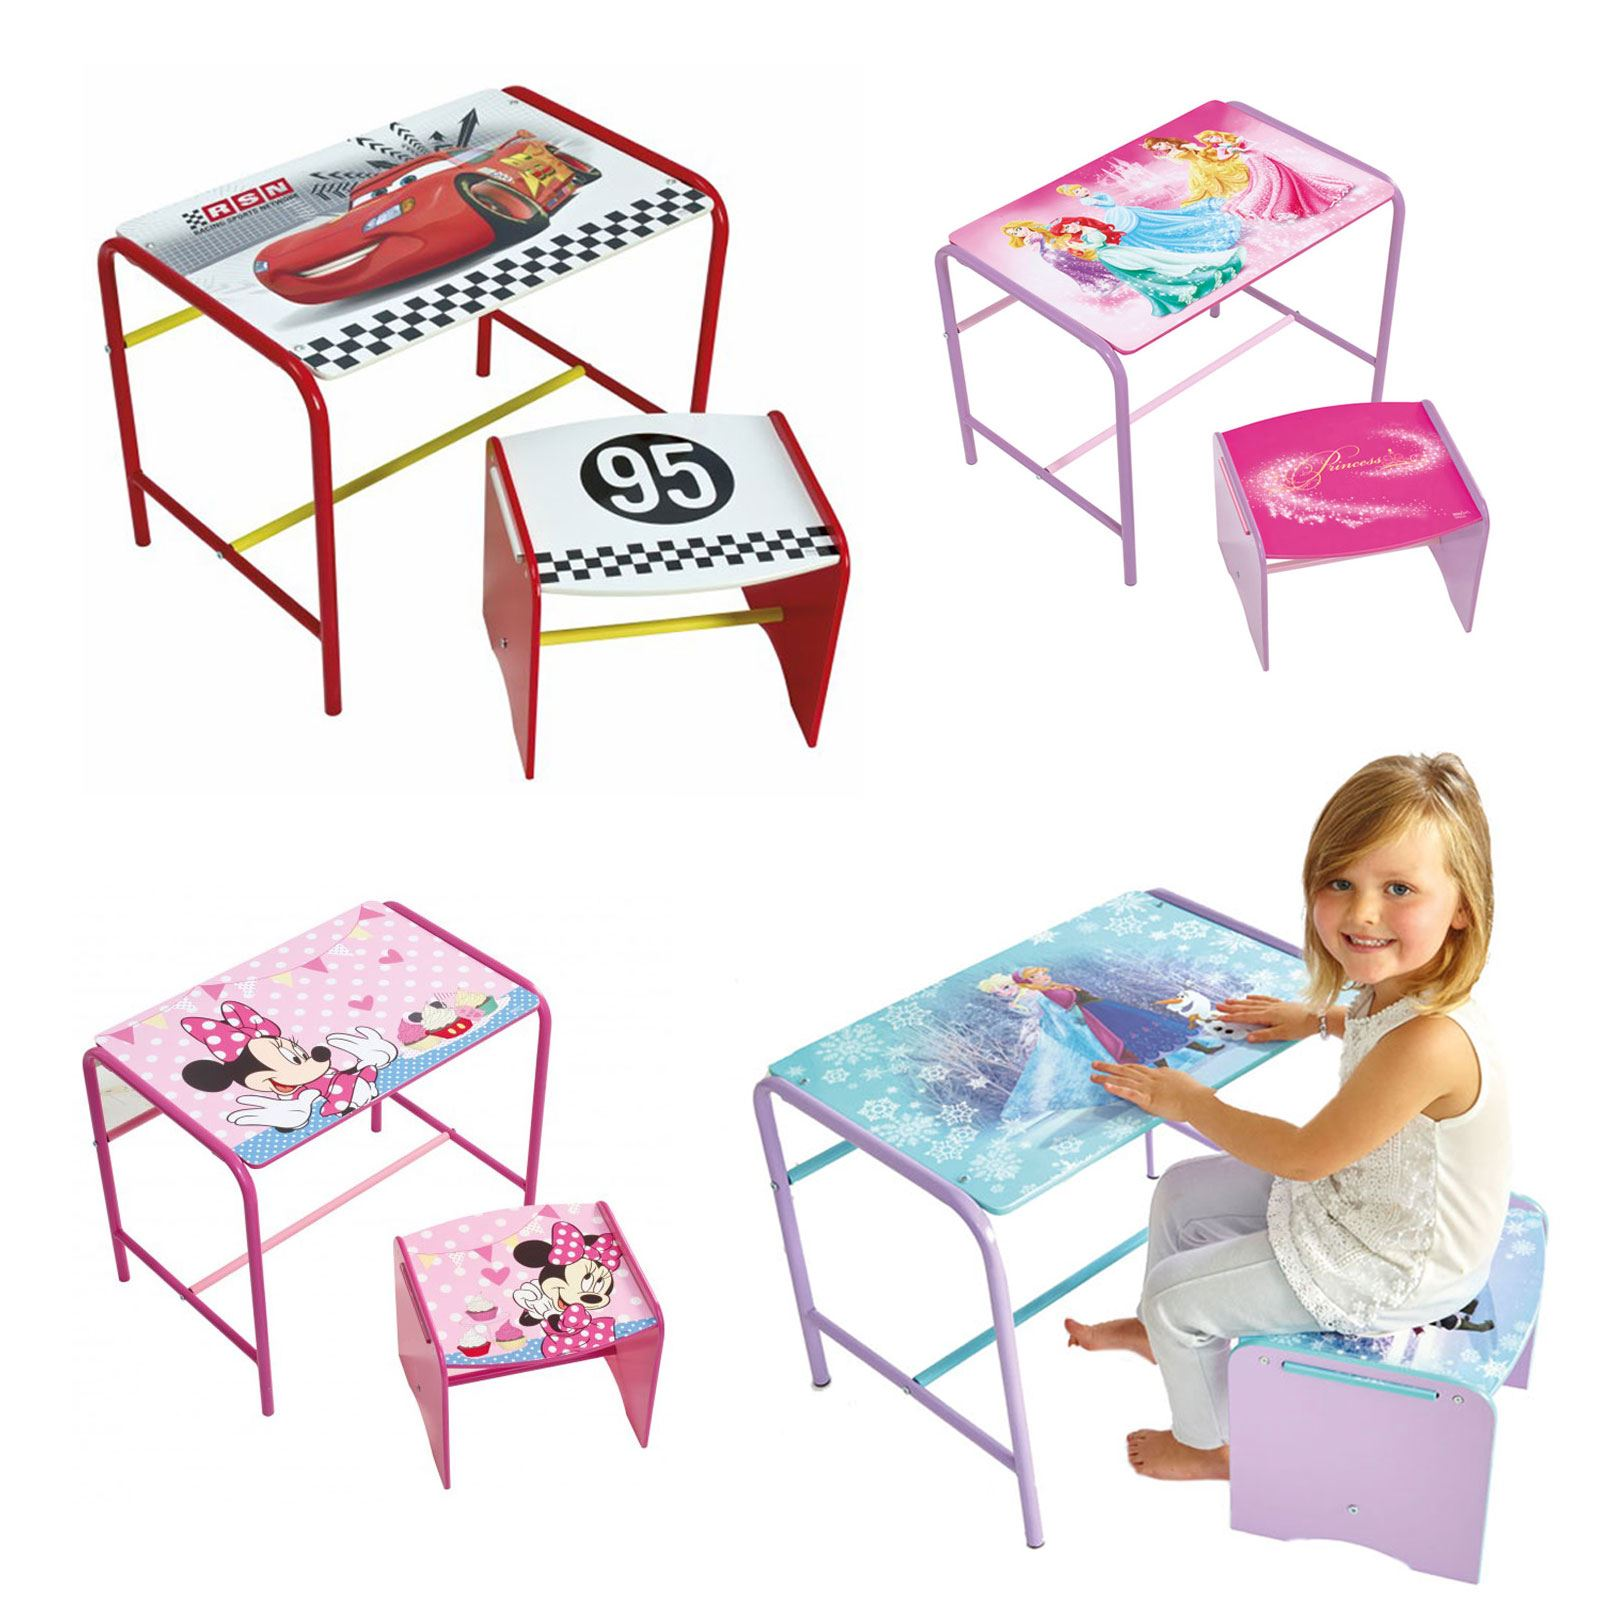 worlds apart doodle bureau meubles d 39 enfants salle de jeux chambre coucher ebay. Black Bedroom Furniture Sets. Home Design Ideas